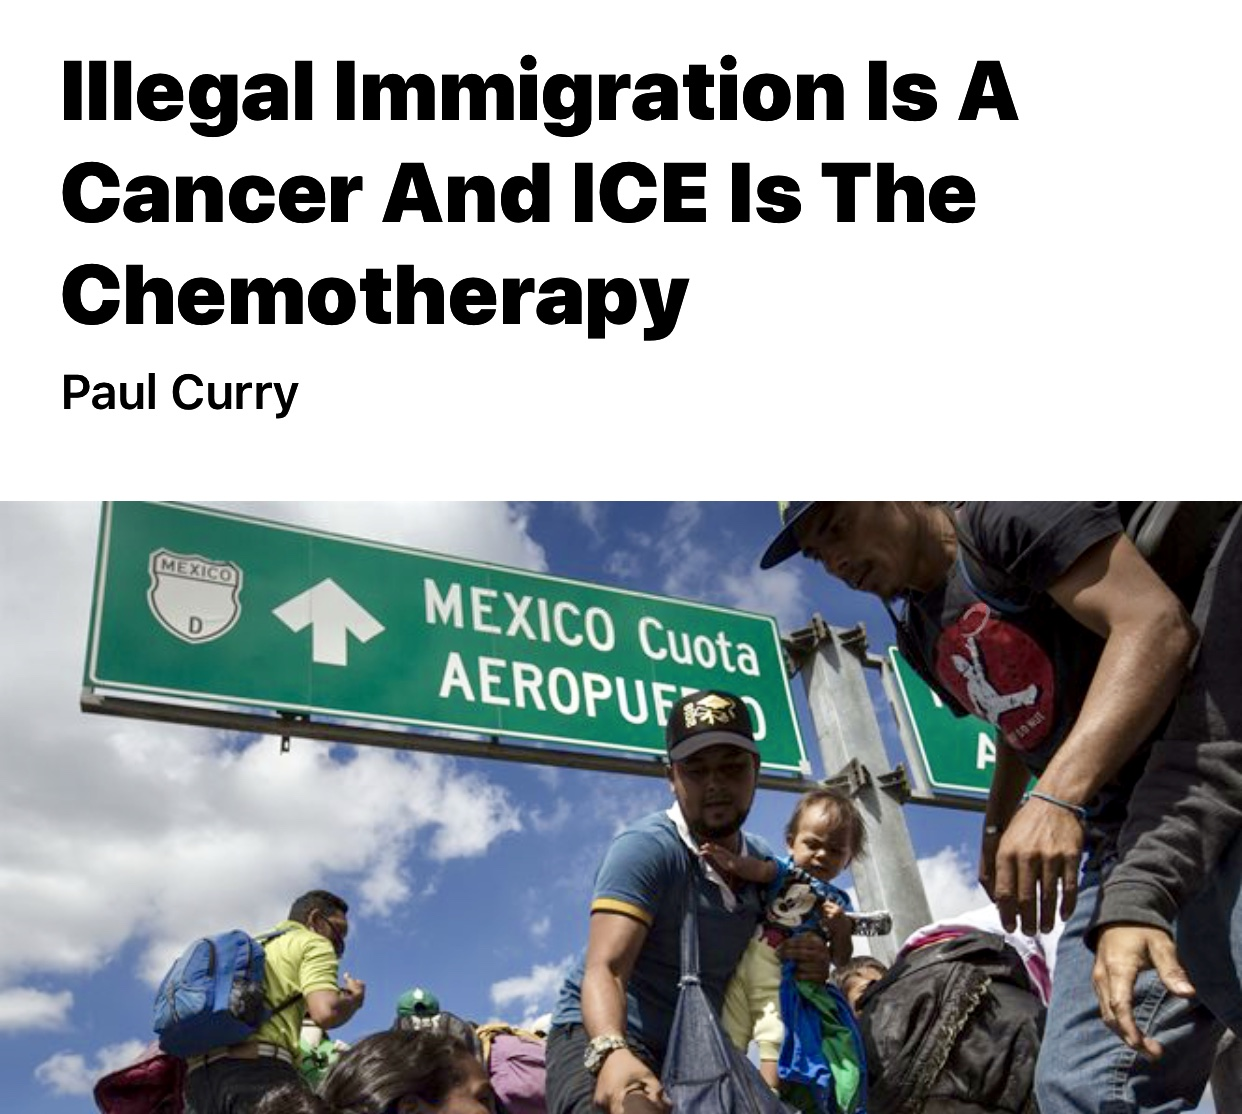 Illegal Immigration Is A Cancer And ICE Is The Chemotherapy